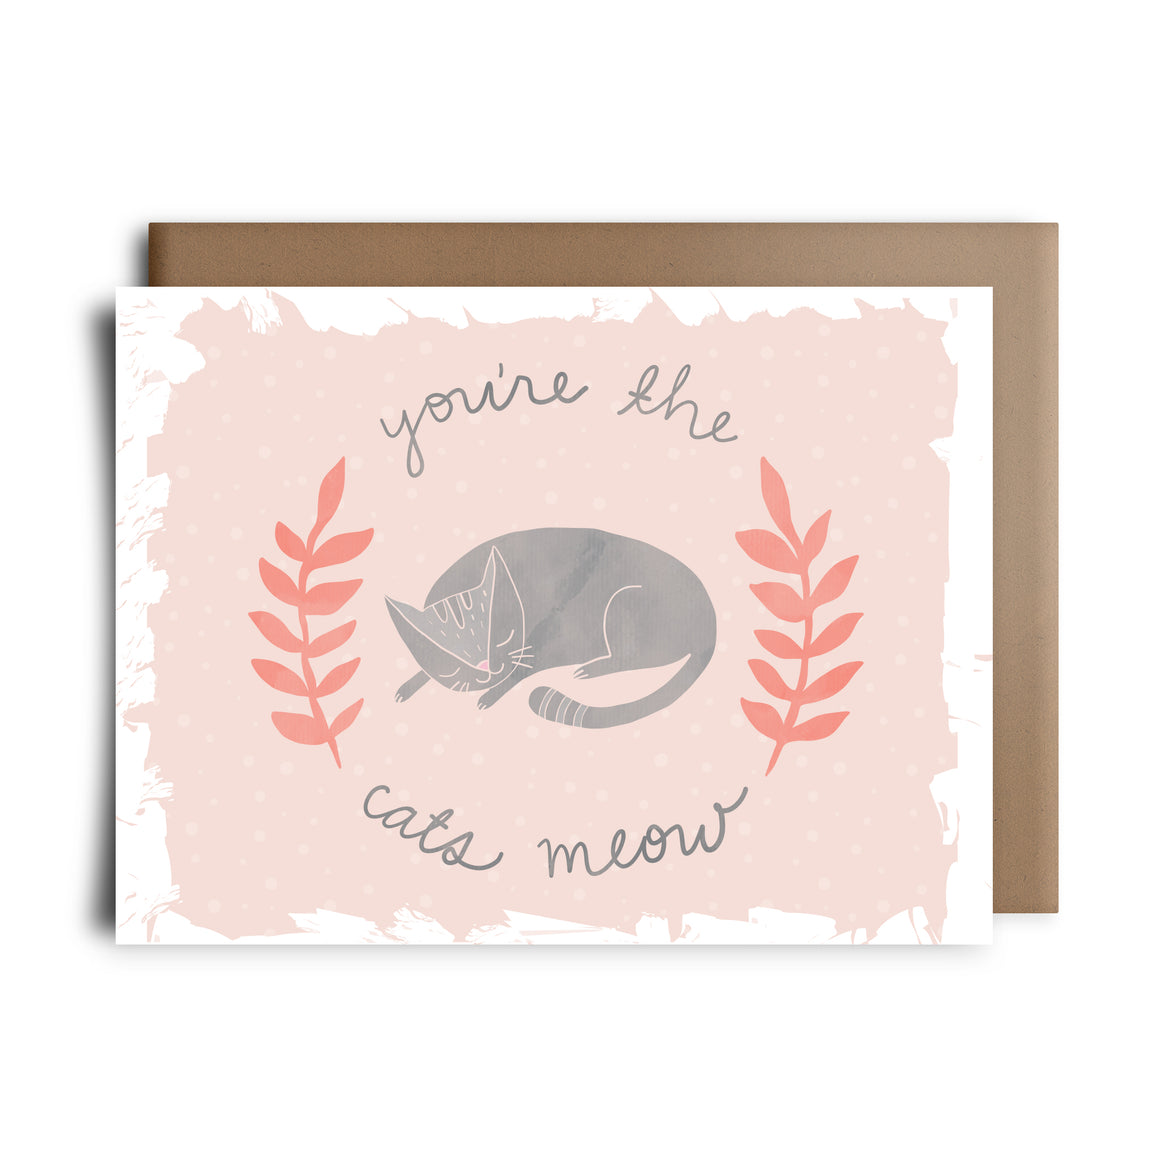 cats meow | greeting card